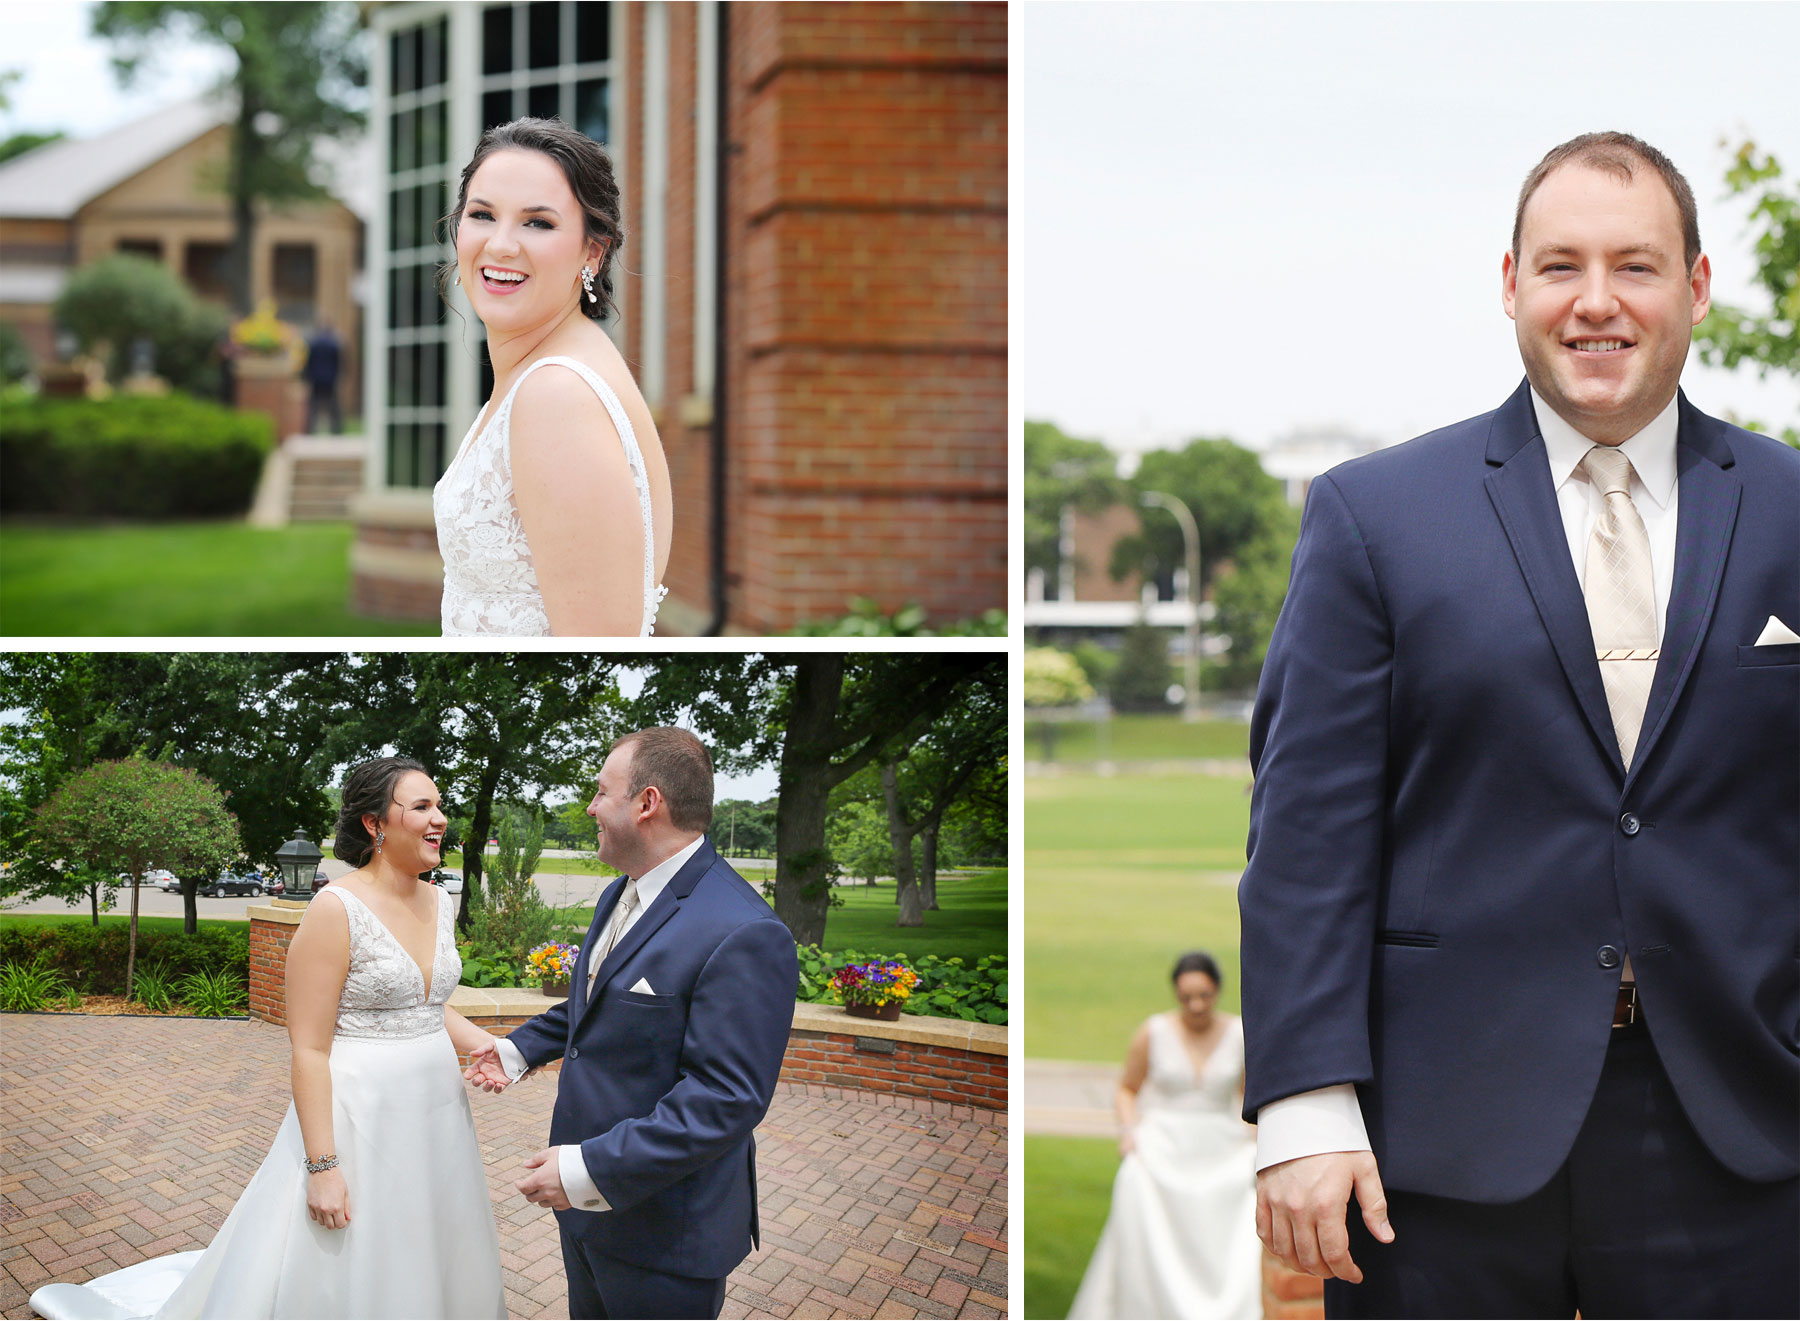 05-Vick-Photography-Wedding-Minneapolis-Minnesota-Our-Lady-of-Grace-Catholic-Church-First-Look-Groom-Bride-Erin-and-David.jpg